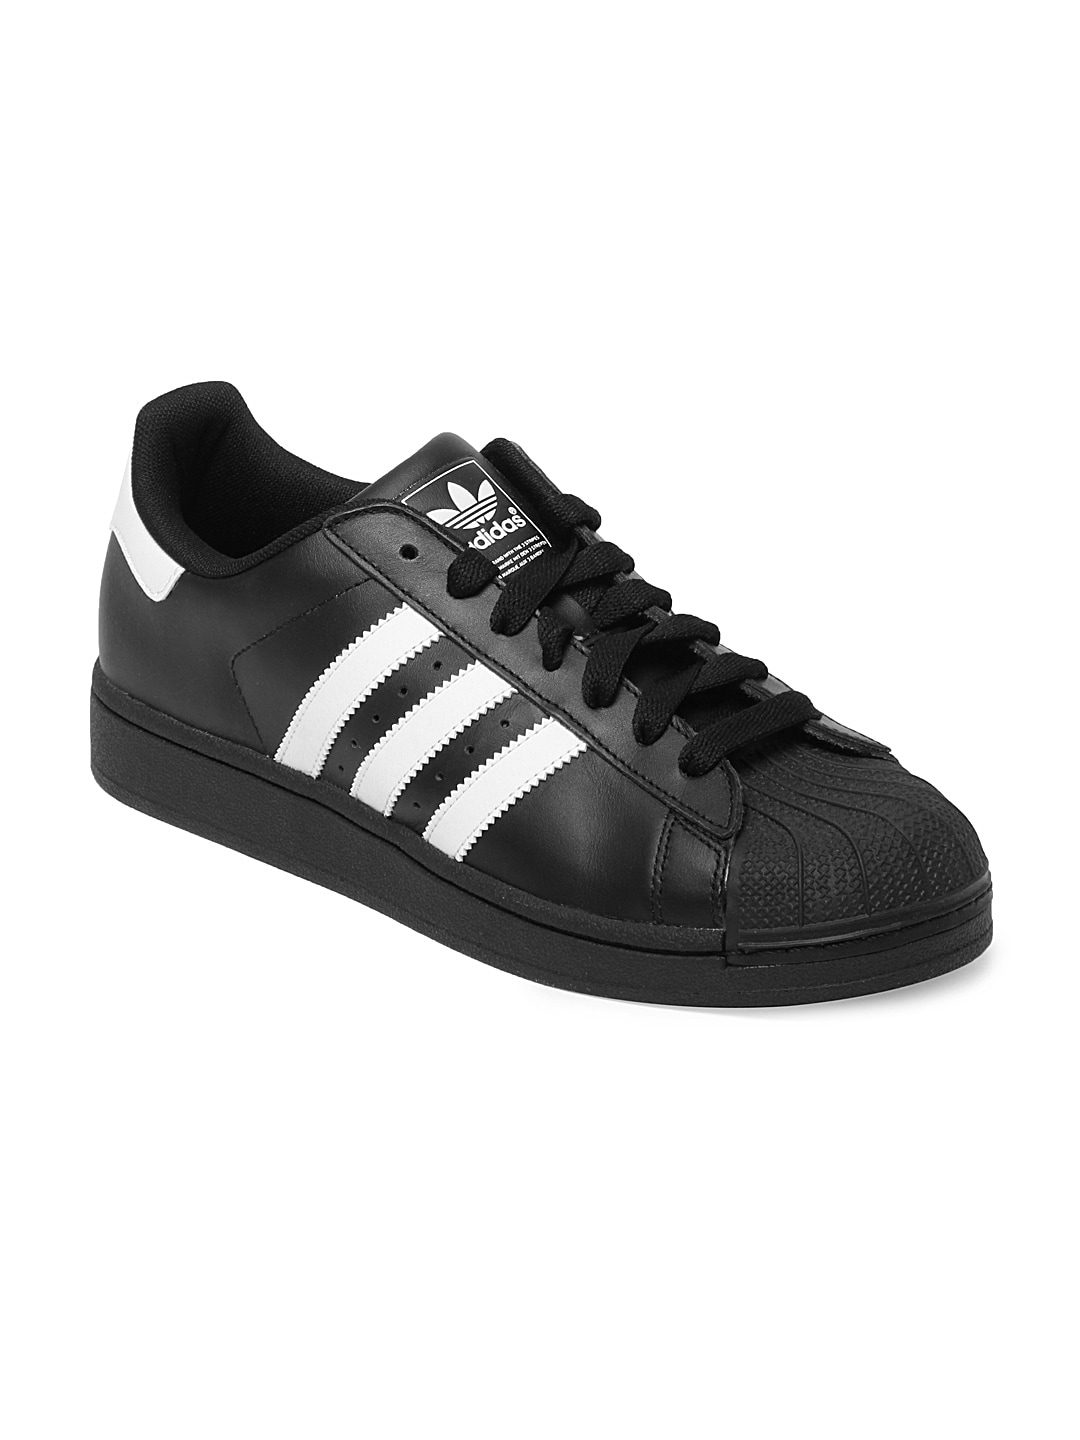 Black Adidas Originals Sneakers